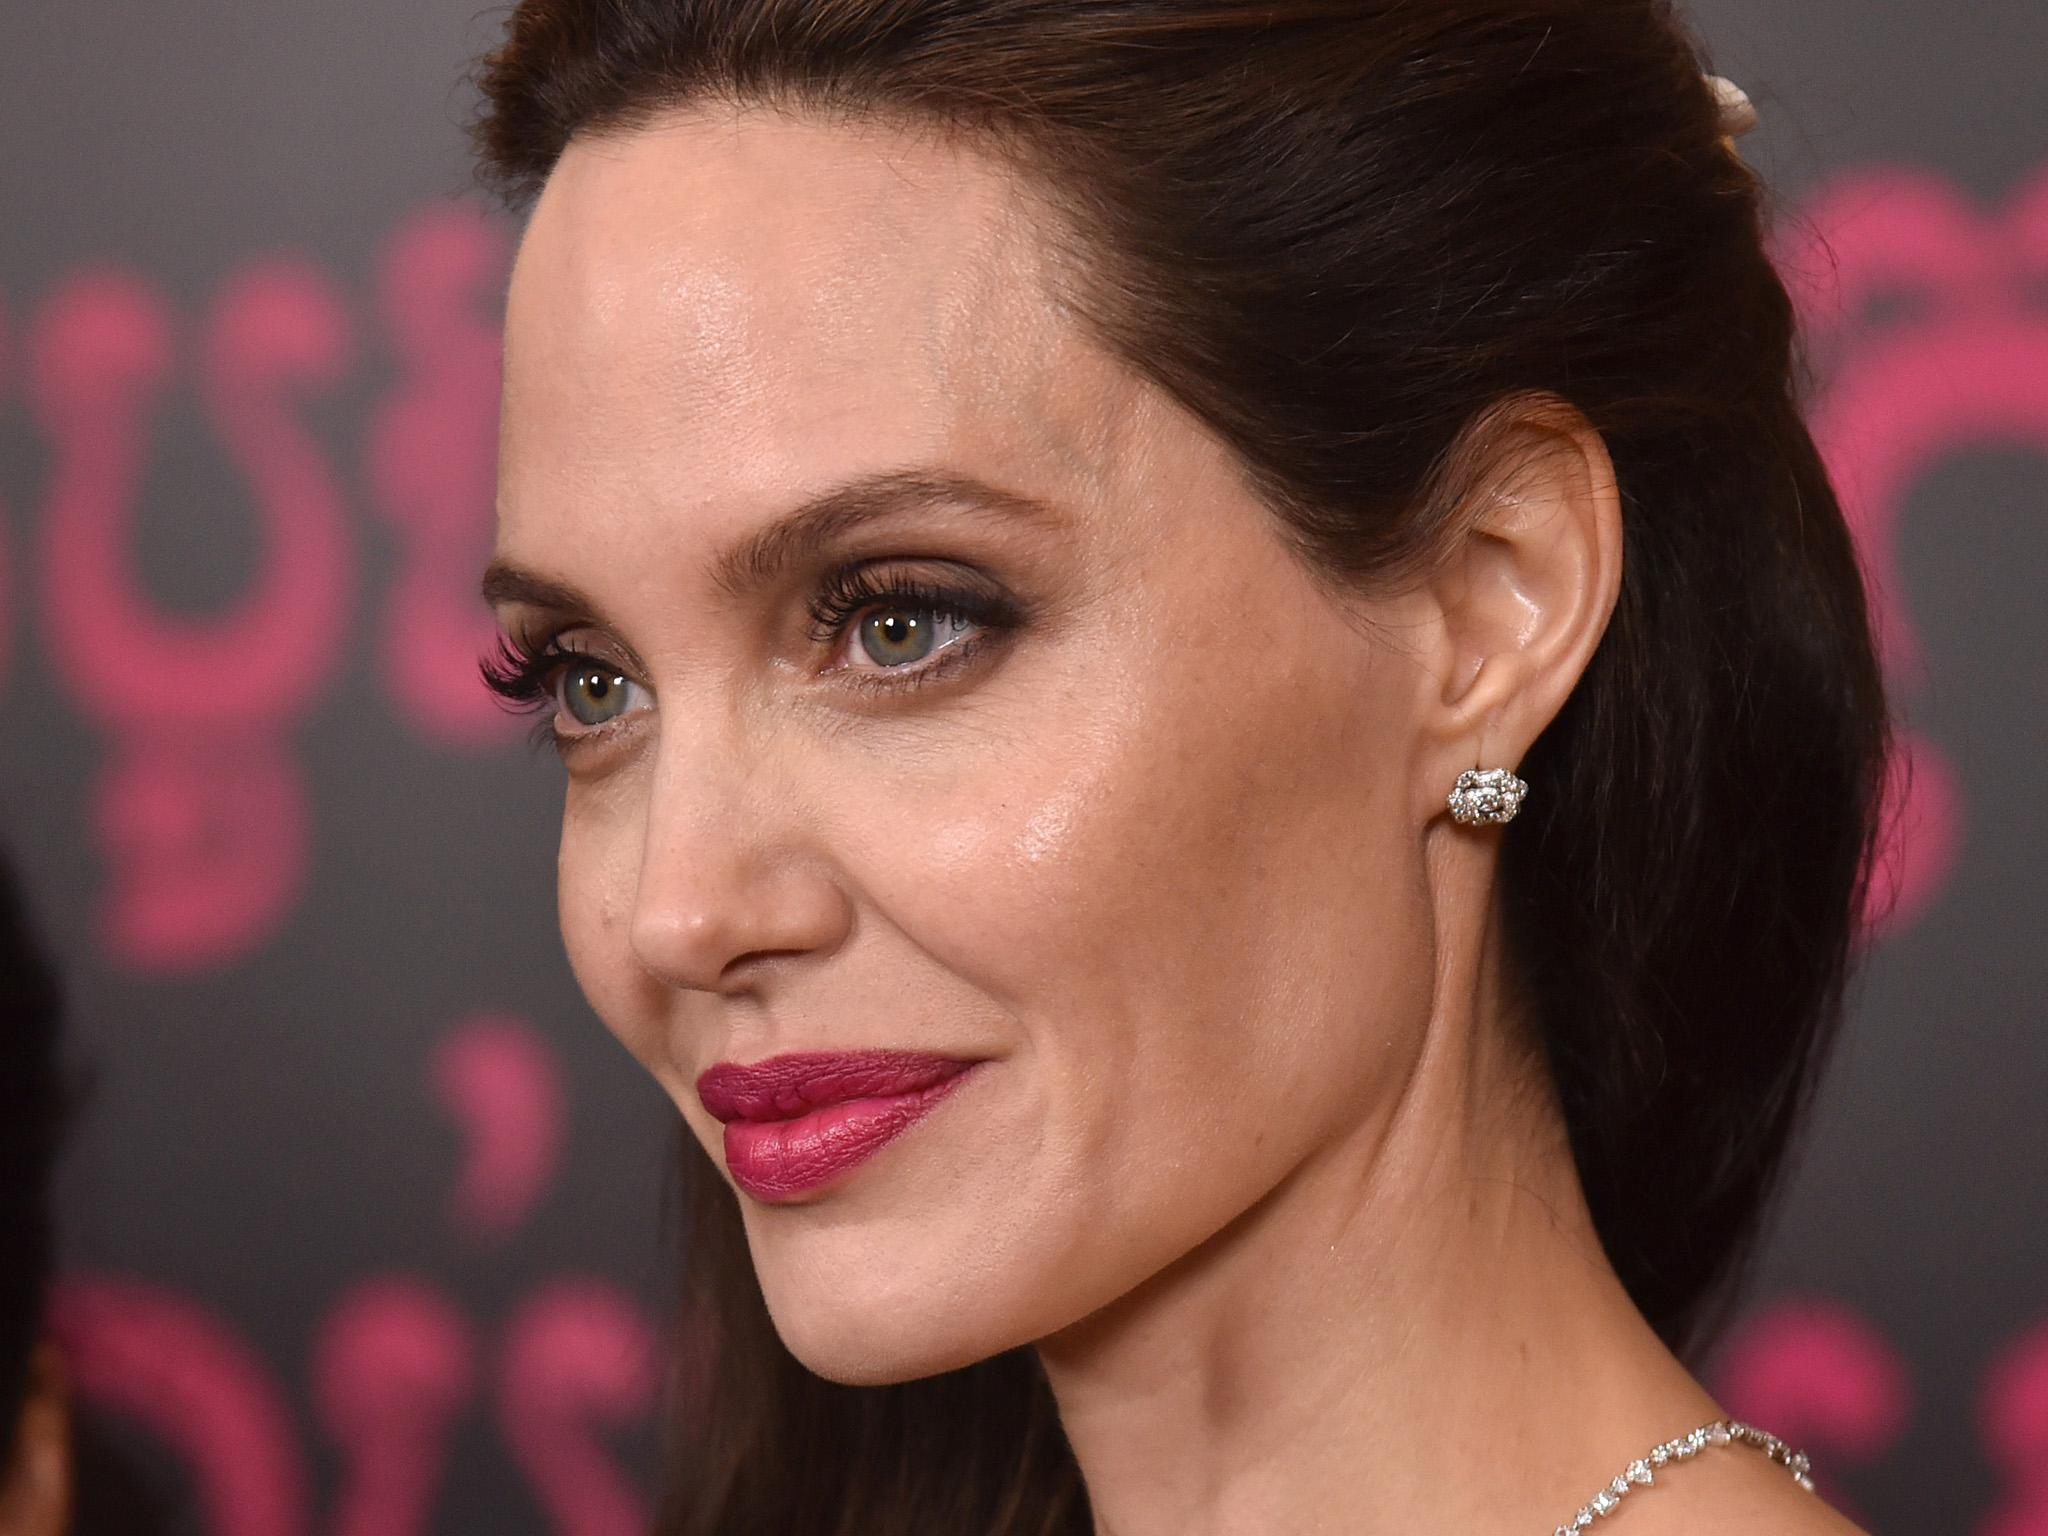 angelina-jolie-might-never-tie-the-knot-again-after-the-difficult-divorce-from-brad-pitt